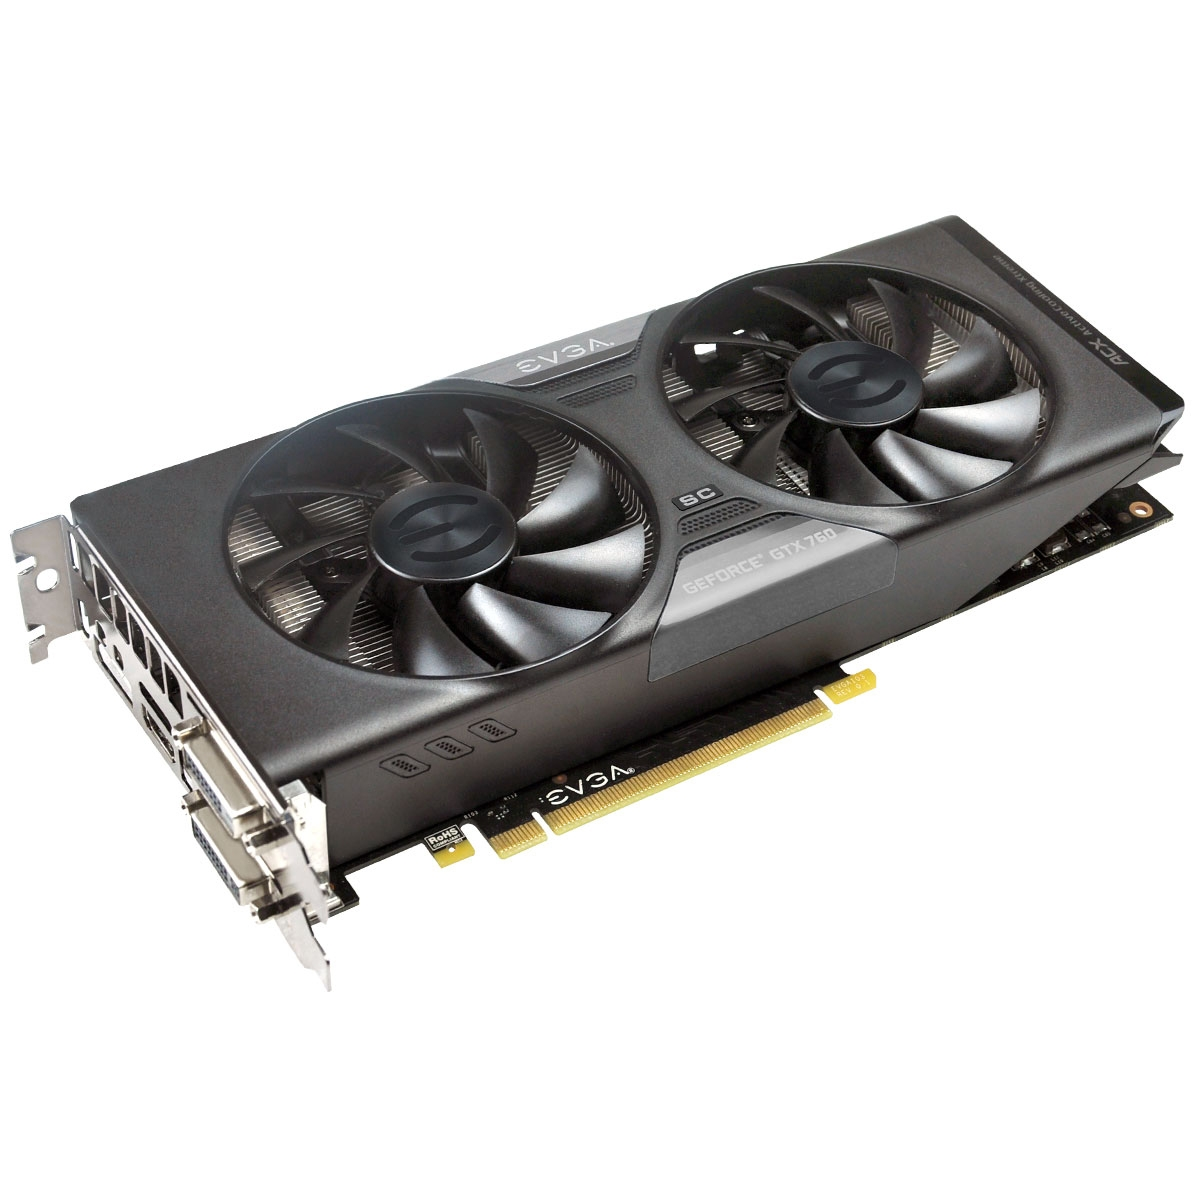 GeForce GTX 760 Graphic Card - 1072 MHz Core - 2 GB GDDR5 SDRAM - PCI Express 3.0 x16 - 6008 MHz Memory Clock - 4096 x 2160 - SLI - Fan Cooler - DirectX 11.1 DirectCompute 5.0 OpenGL 4.3 OpenCL - HDMI - DisplayPort - DVI